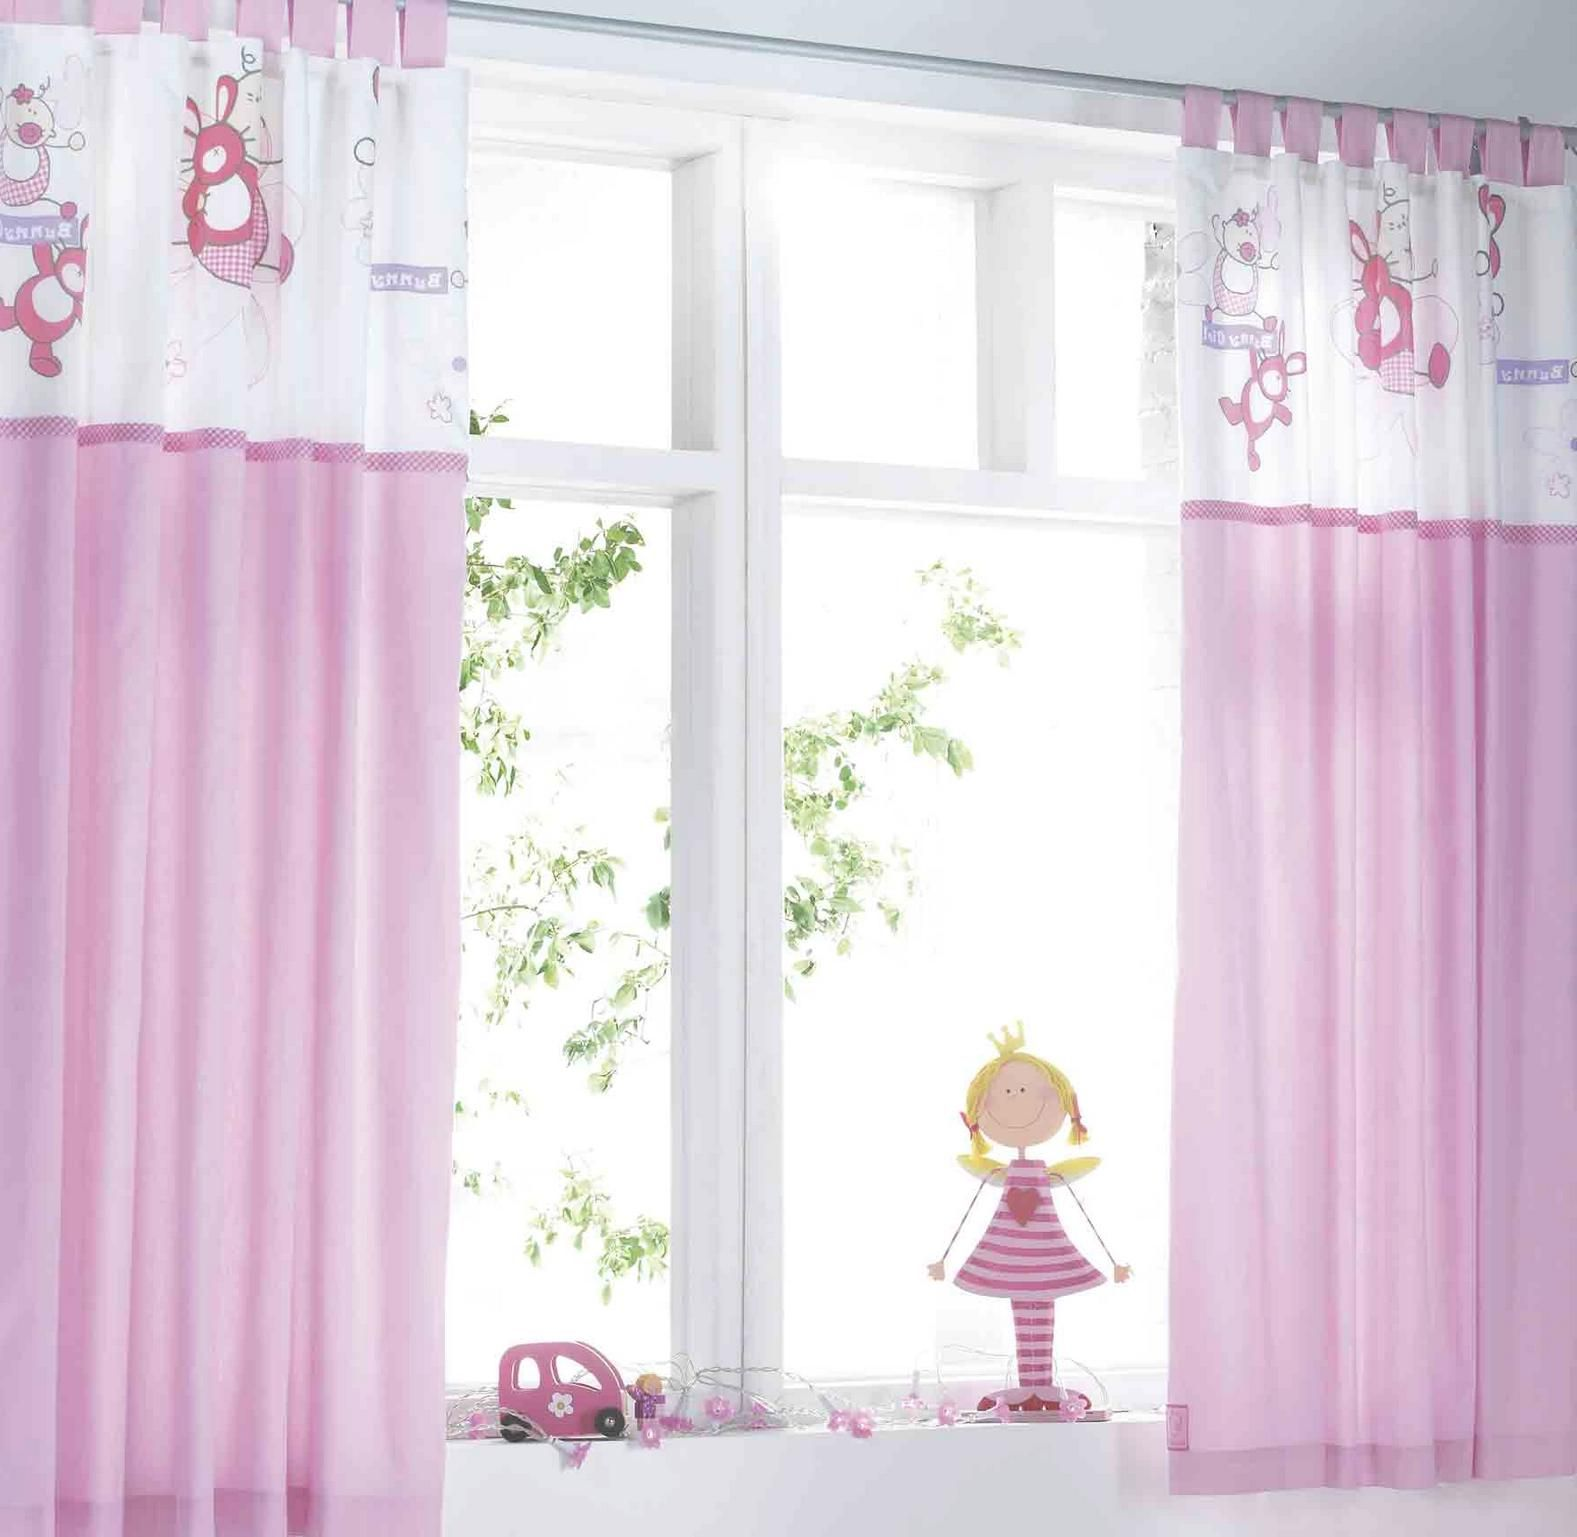 Kids Room Bee Motive Kids Room Curtains For Girl With